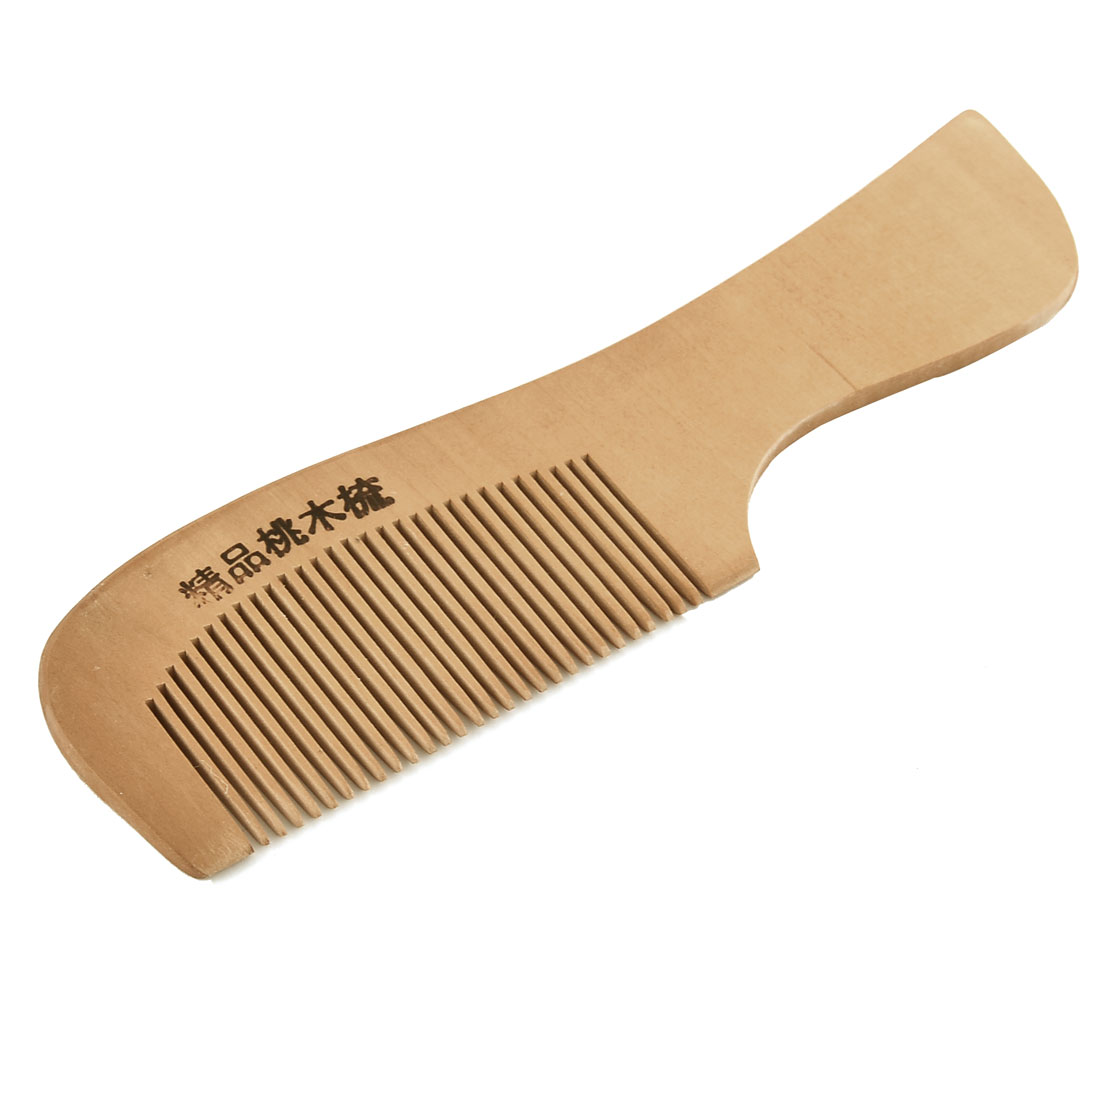 Wooden Portable Fine Toothed Wide Handle Hair Care Massage Comb Brown 17.5cm Length